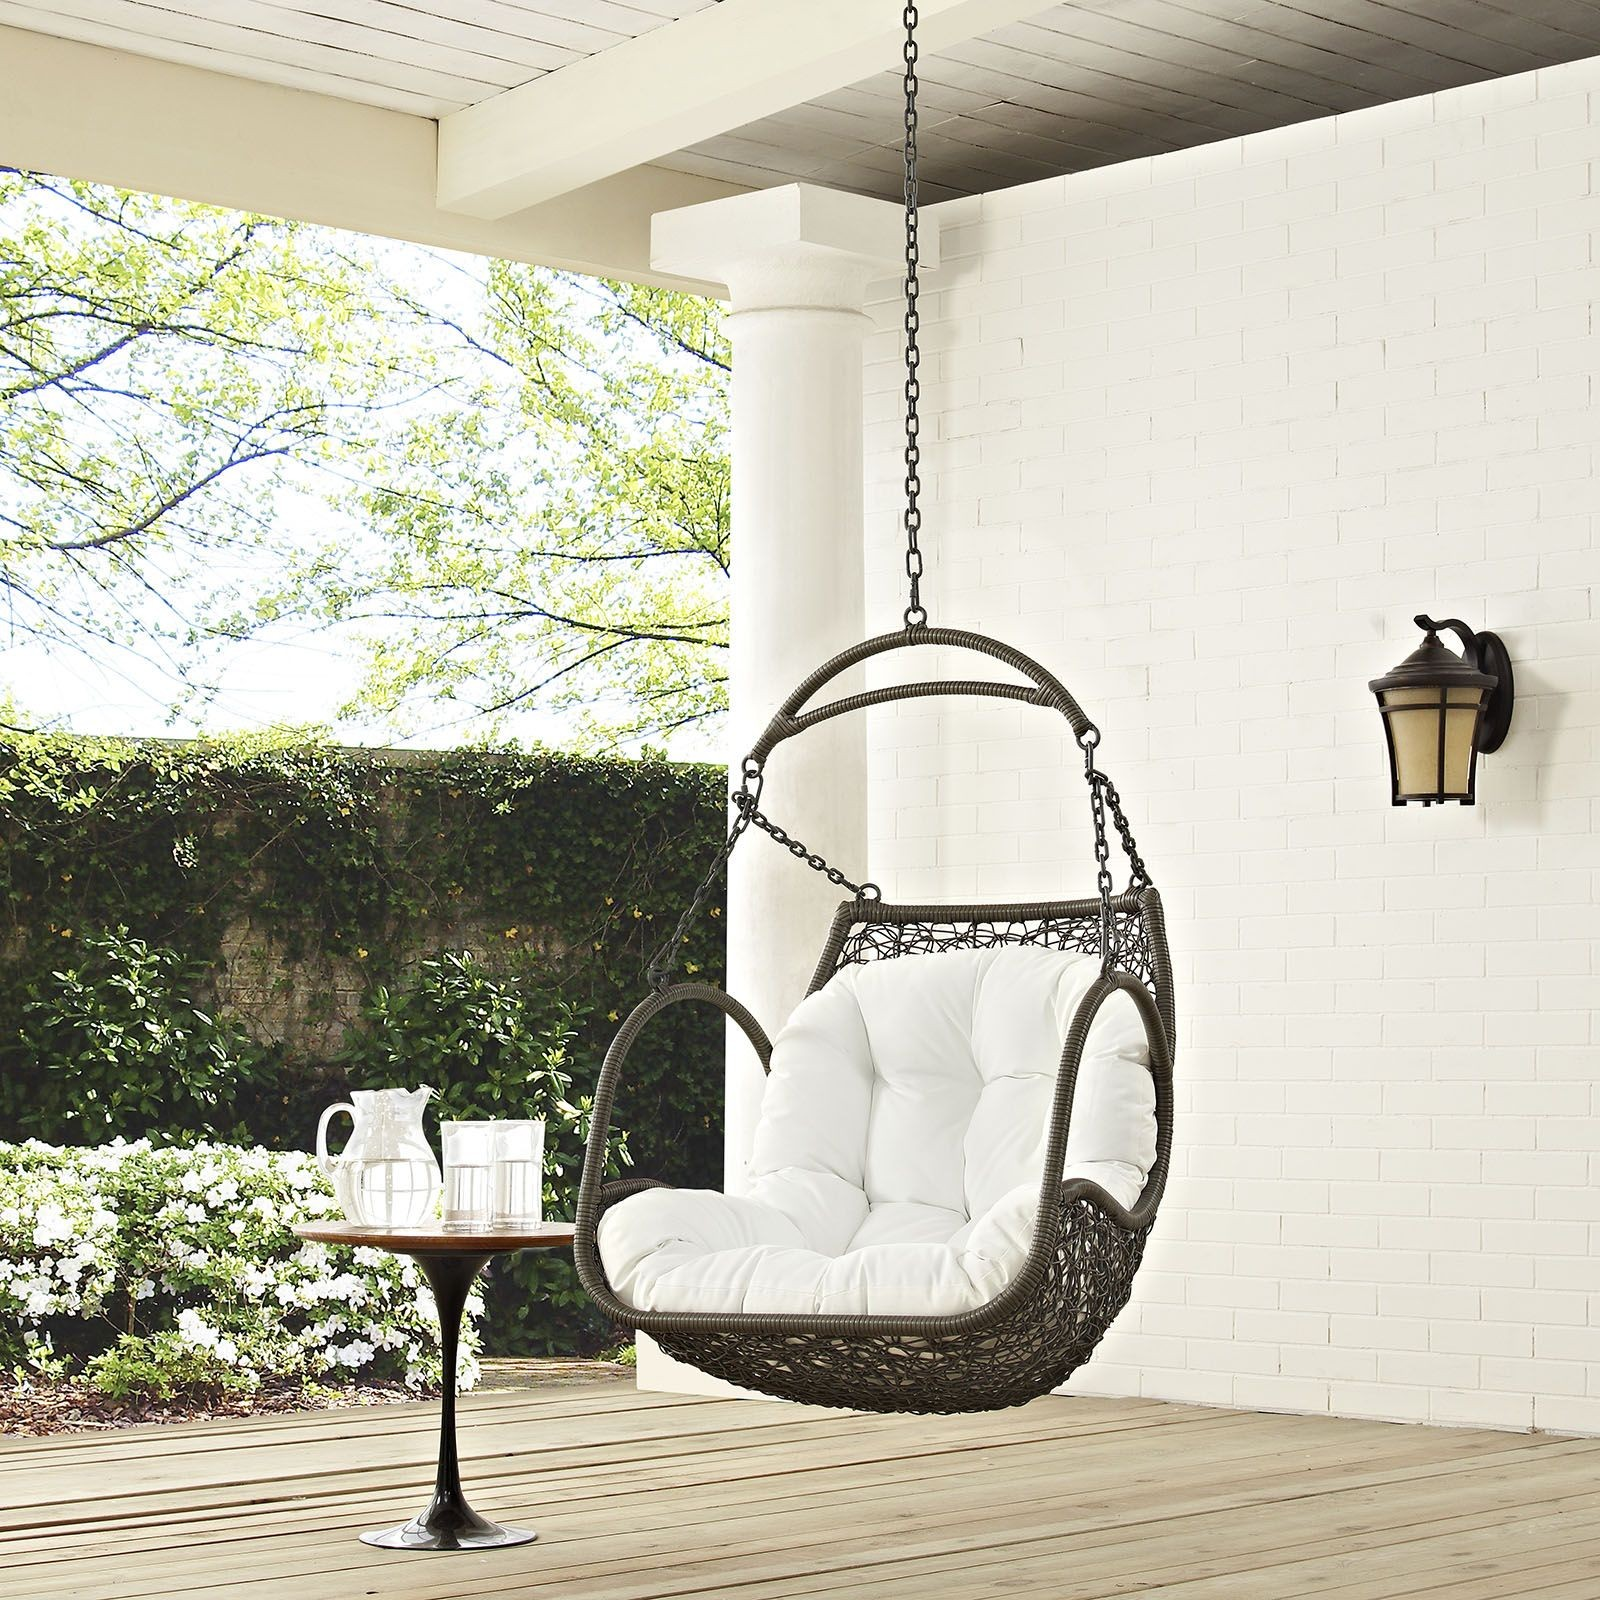 Arbor White Outdoor Patio Swing Chair Without Stand, EEI ...